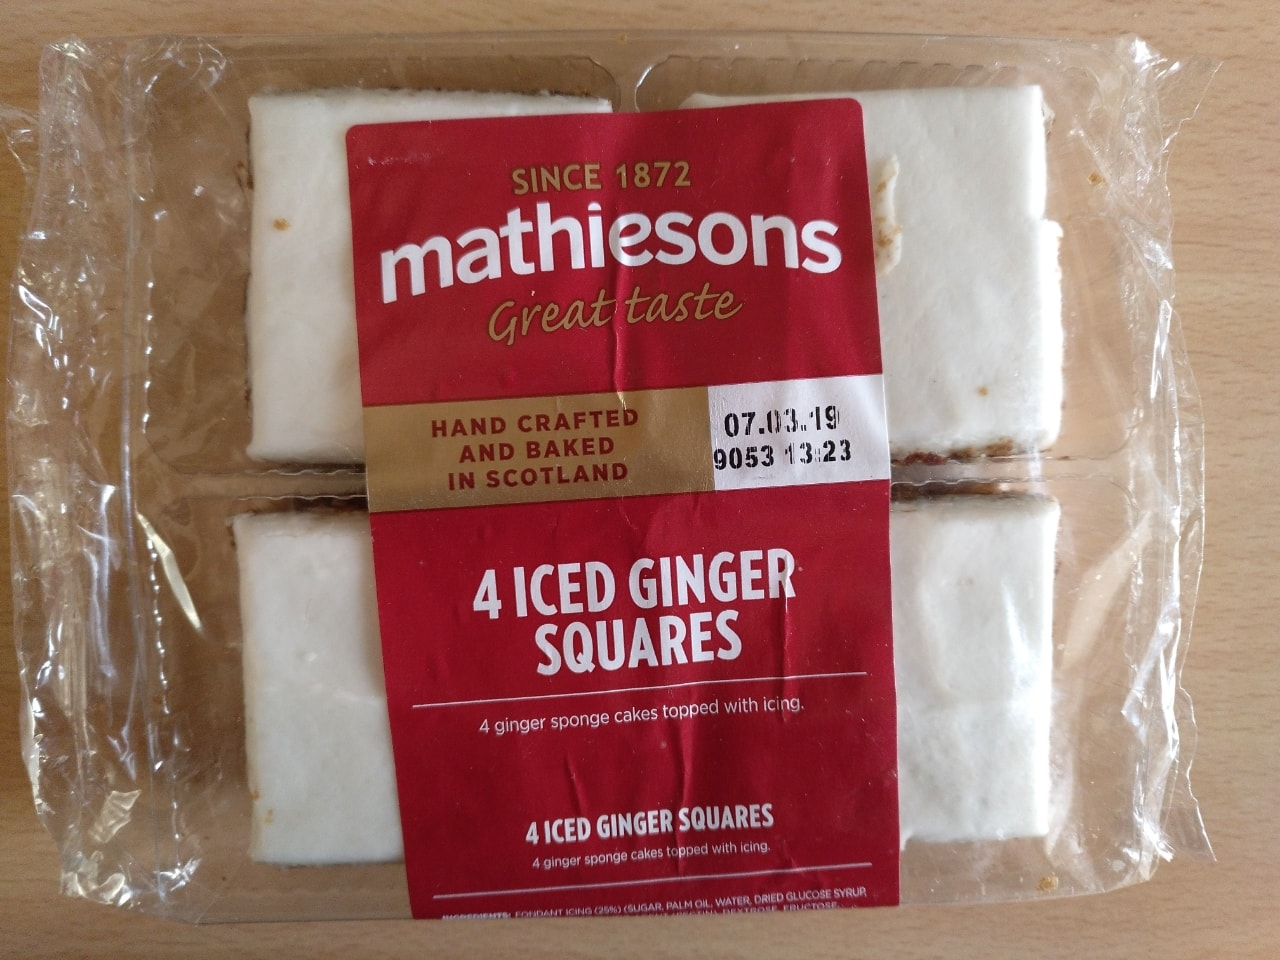 Iced ginger squares